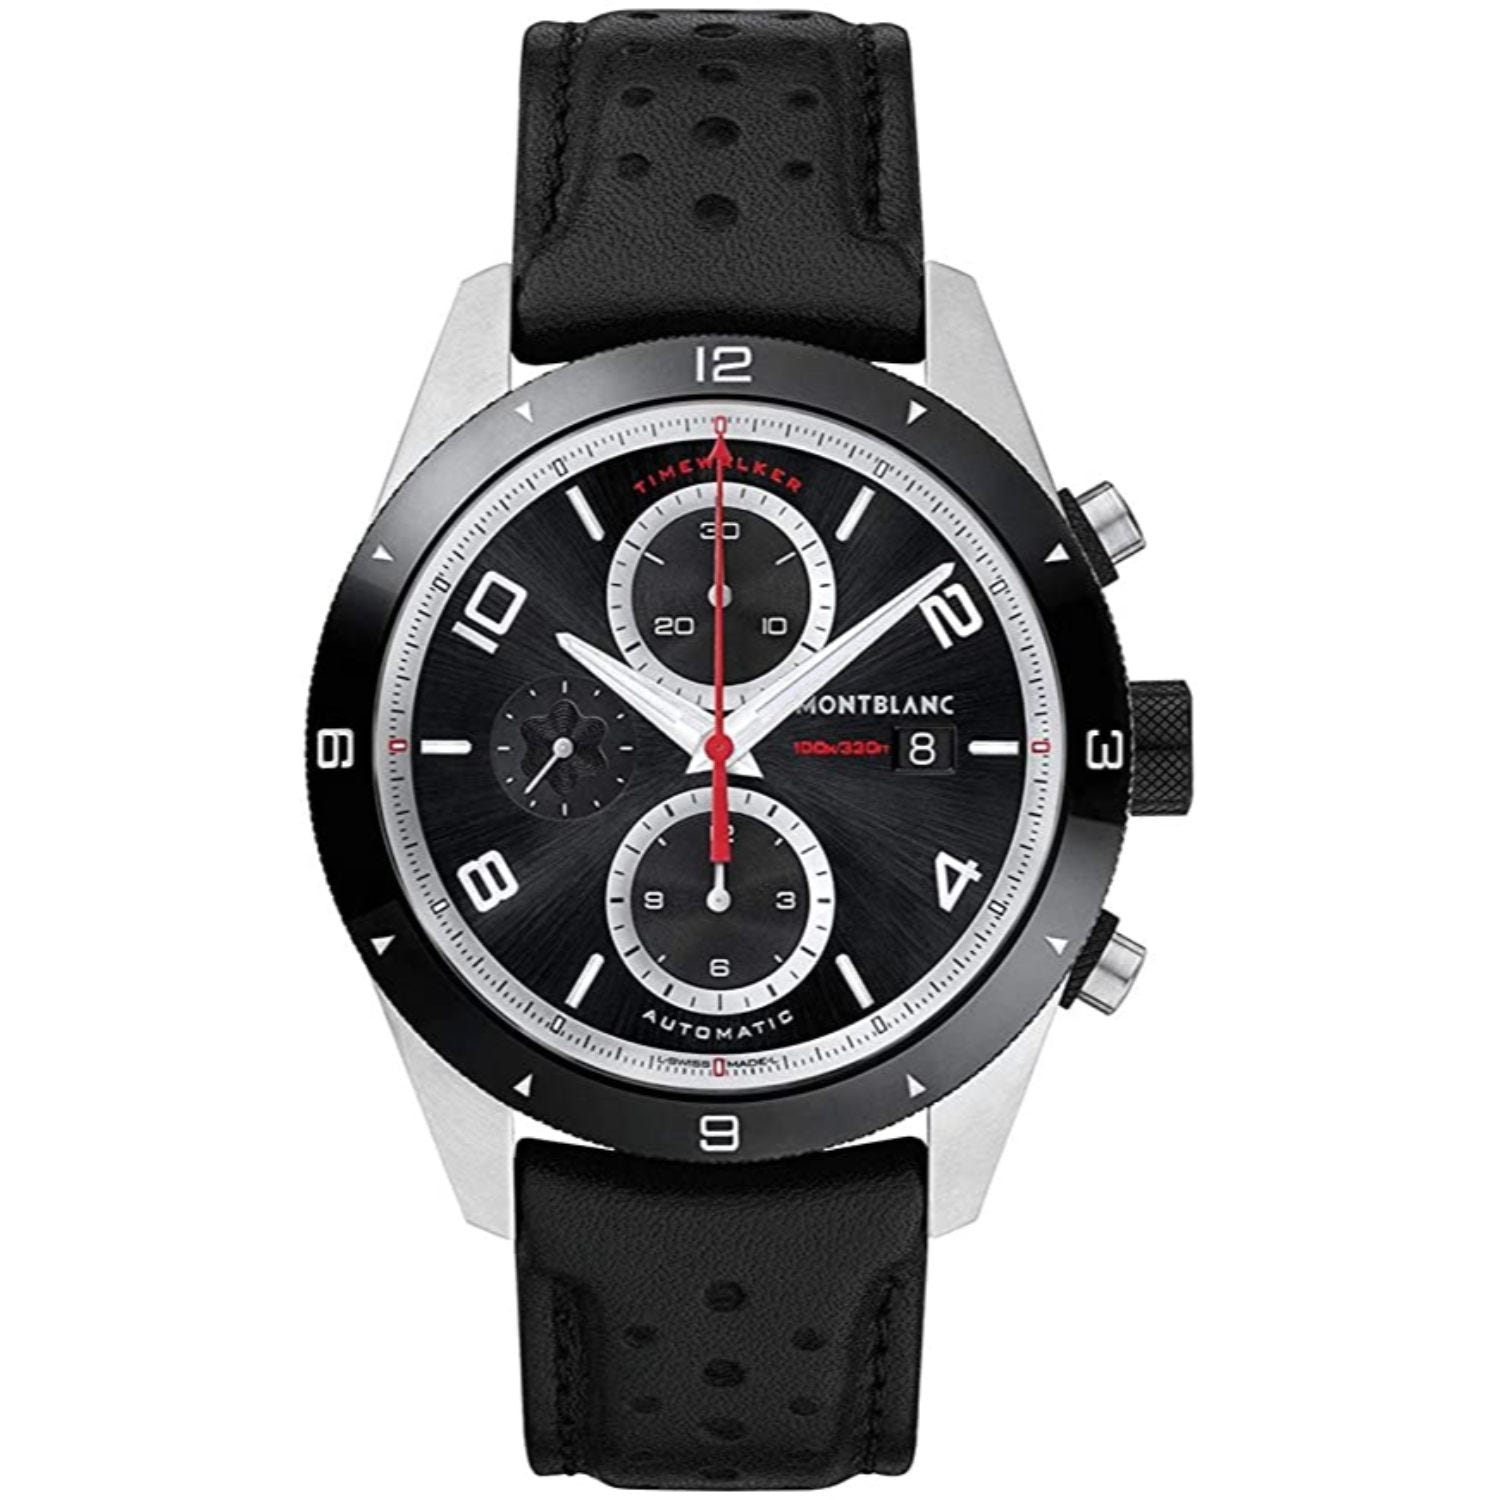 Montblanc Timewalker 43mm Black Chrono Dial Black Strap Watch